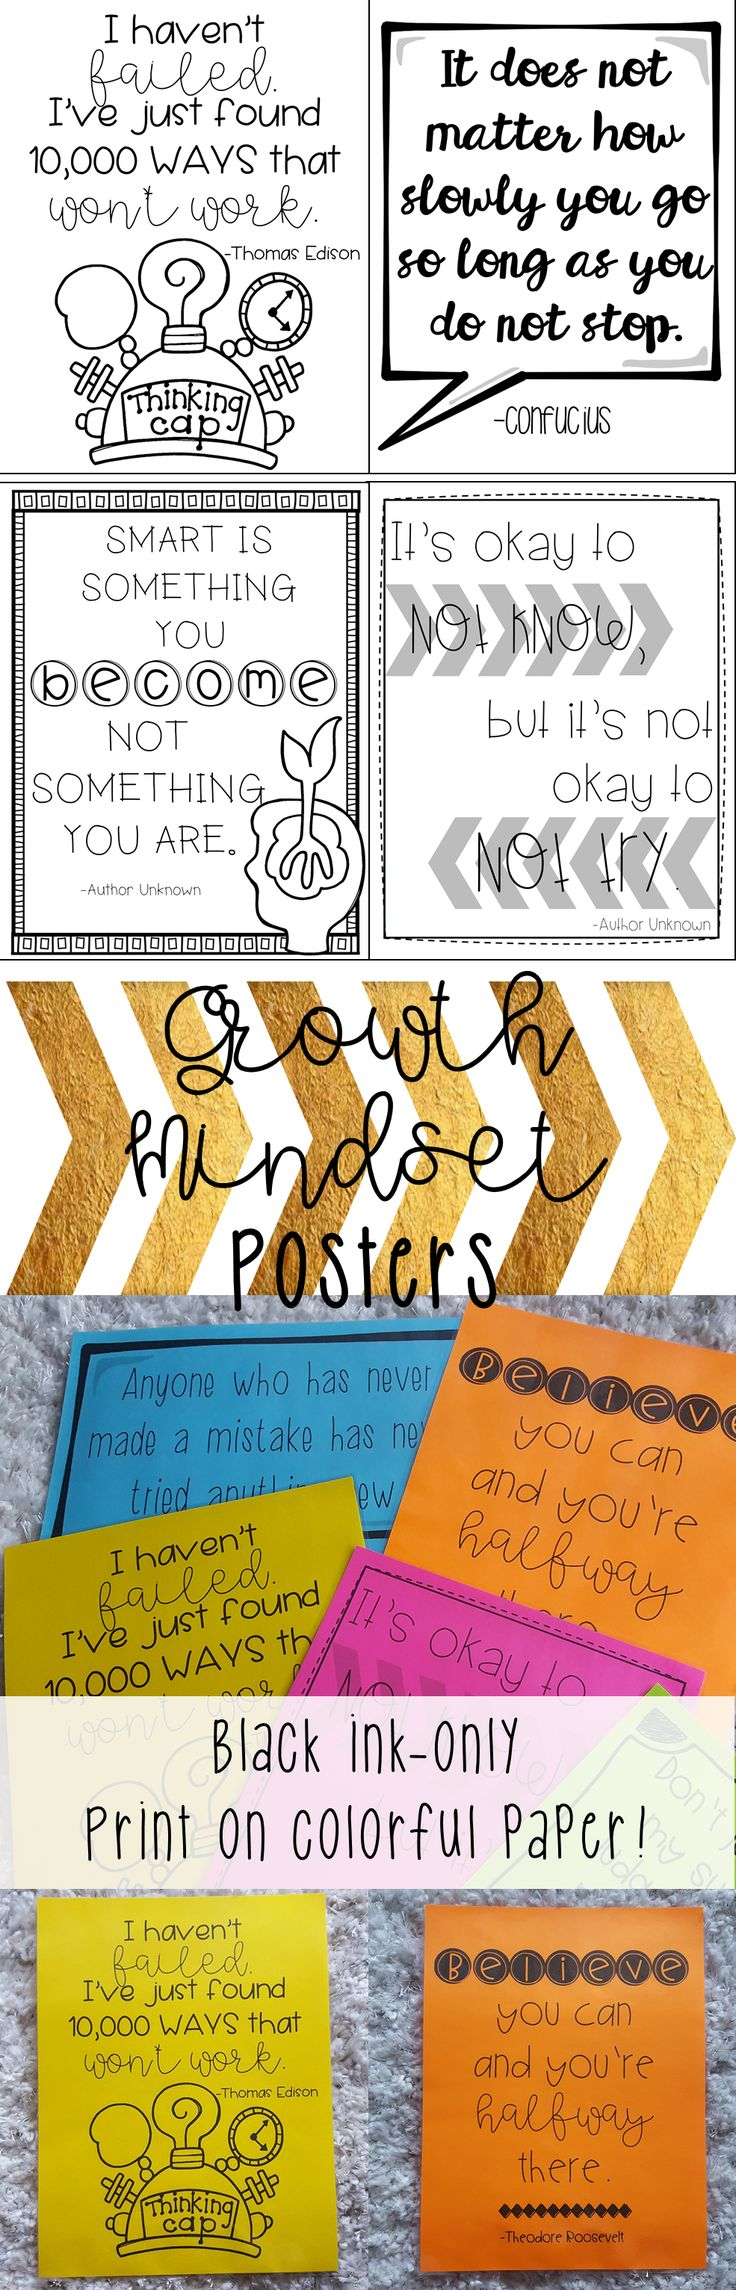 Poster design ideas for school - Black Ink Growth Mindset Posters For Classroom Decor Perfect Quotes For A Bulletin Board